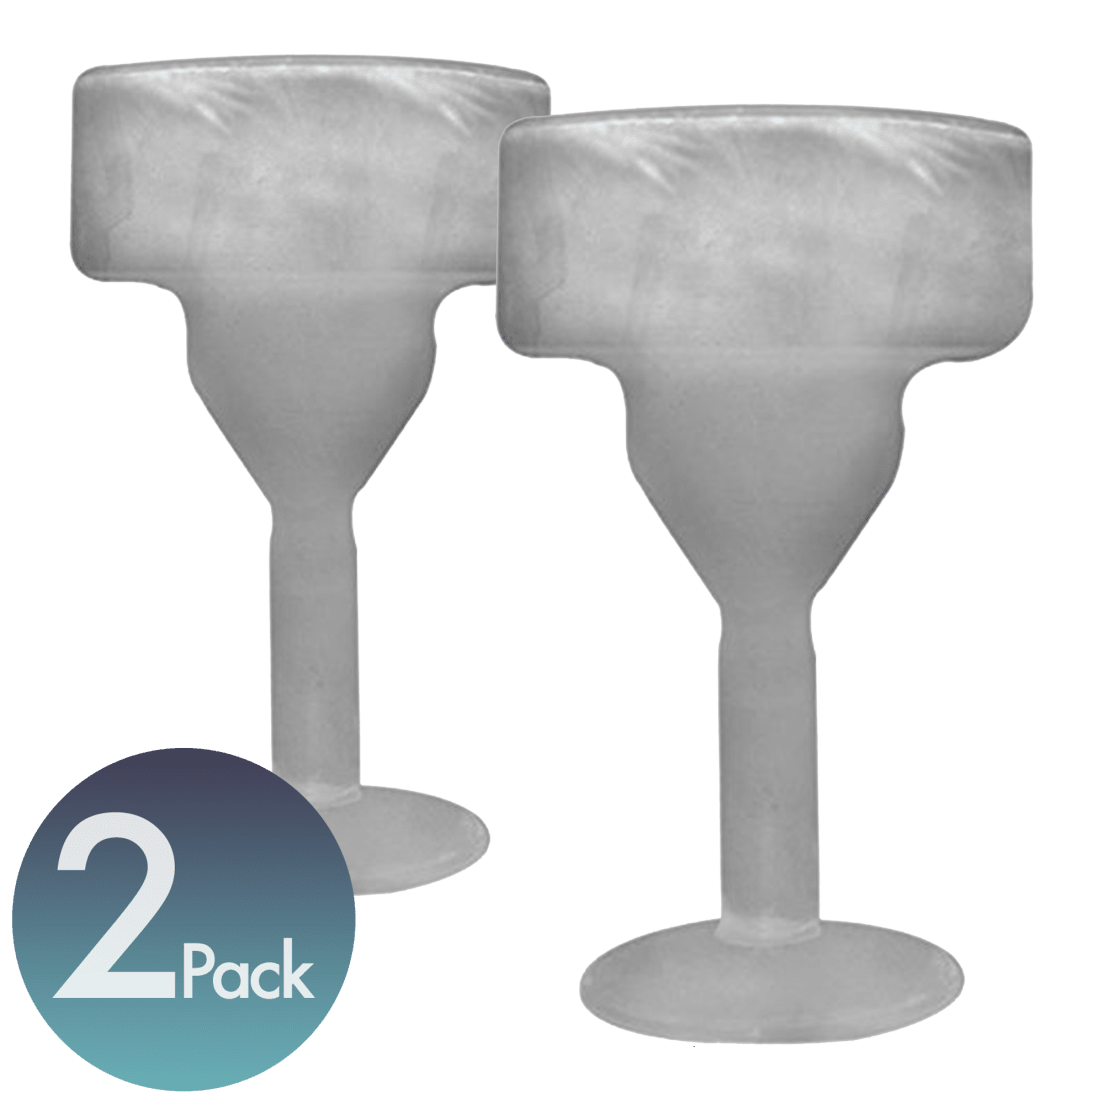 2 Pack Amsterdam Freeze Glass Margarita Glasses - Kate-hume-glass-decorations-for-an-apartment-in-moscow